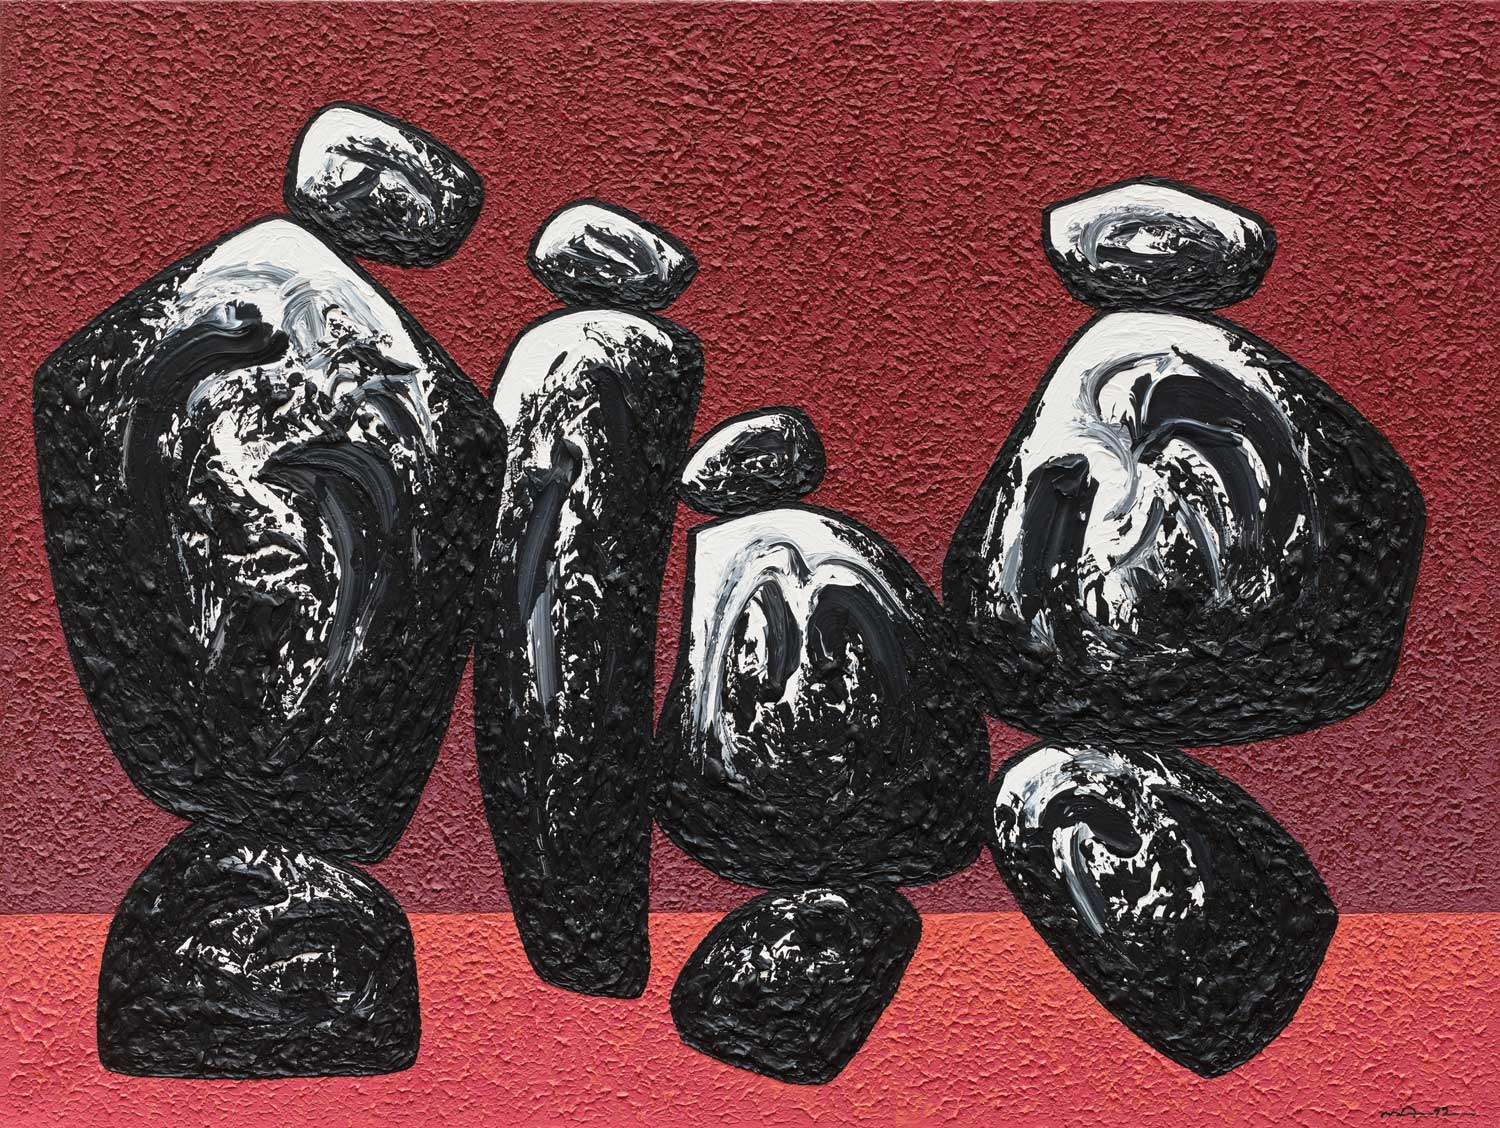 Rocks 1, 2012, acrylic on canvas, 150 × 200 cm. Courtesy the artist and Rossi & Rossi, London